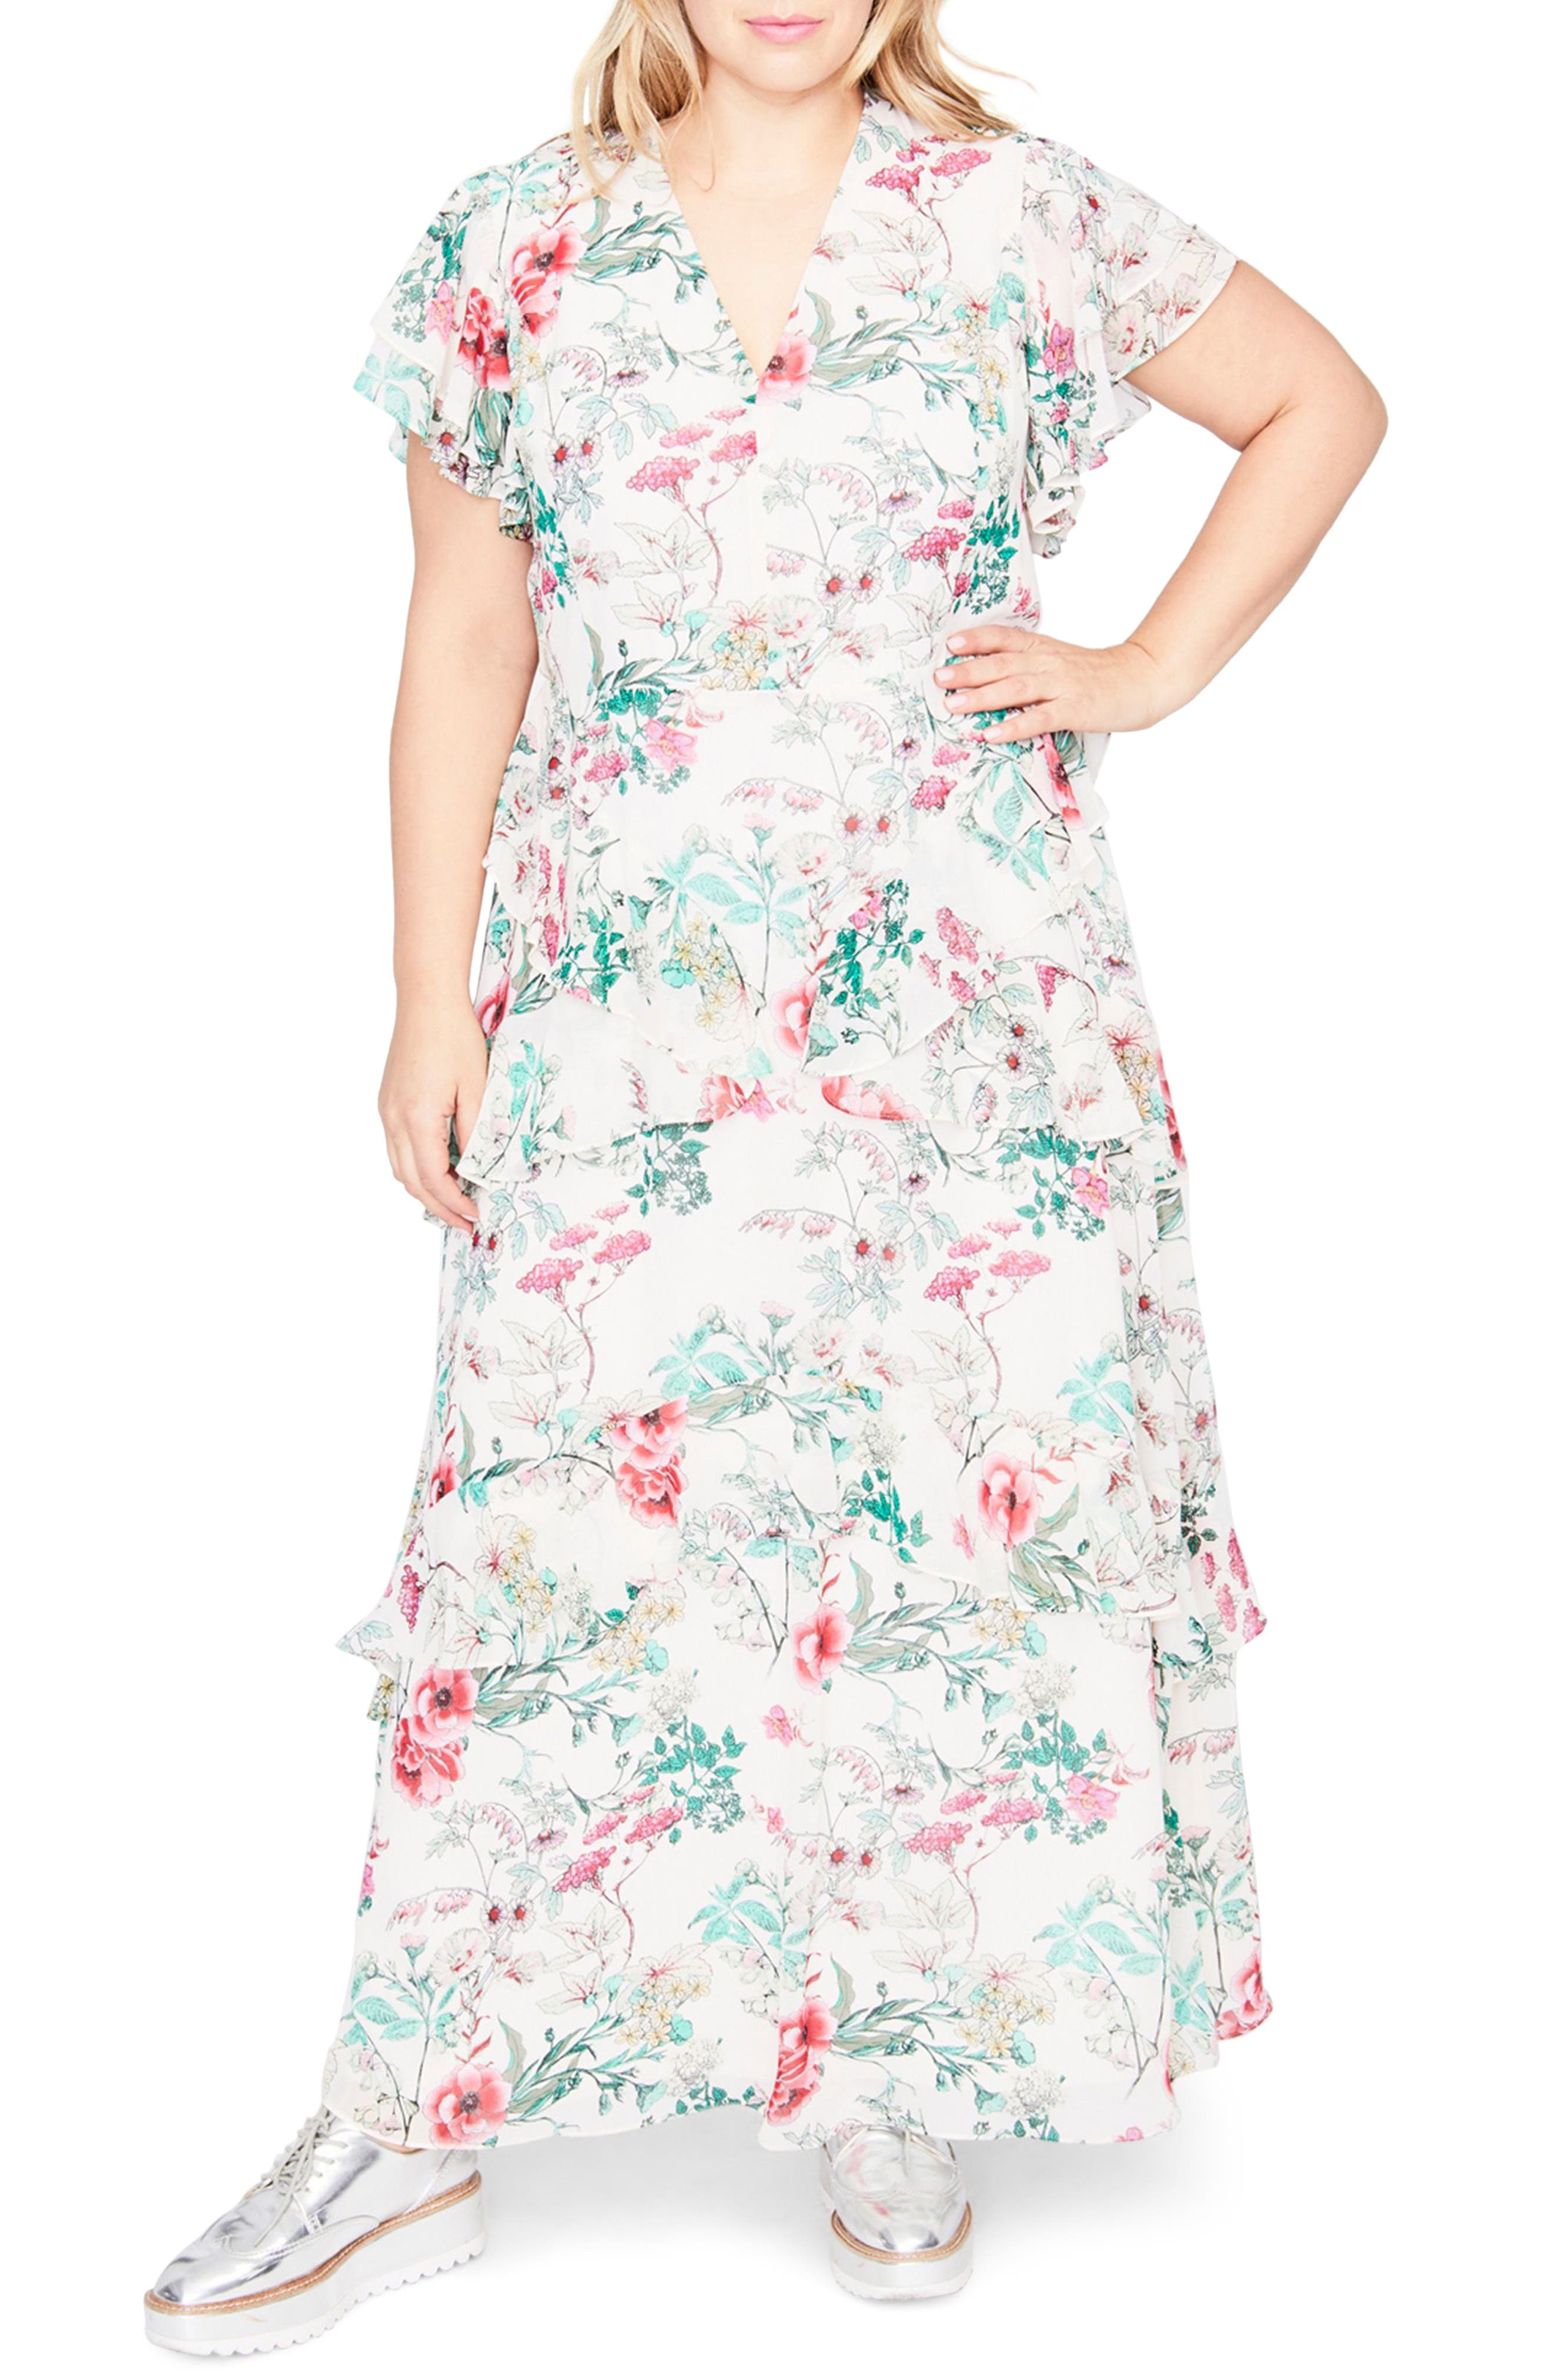 Ruffle Floral Maxi Dress,                         Main,                         color, Almond Milk Combo